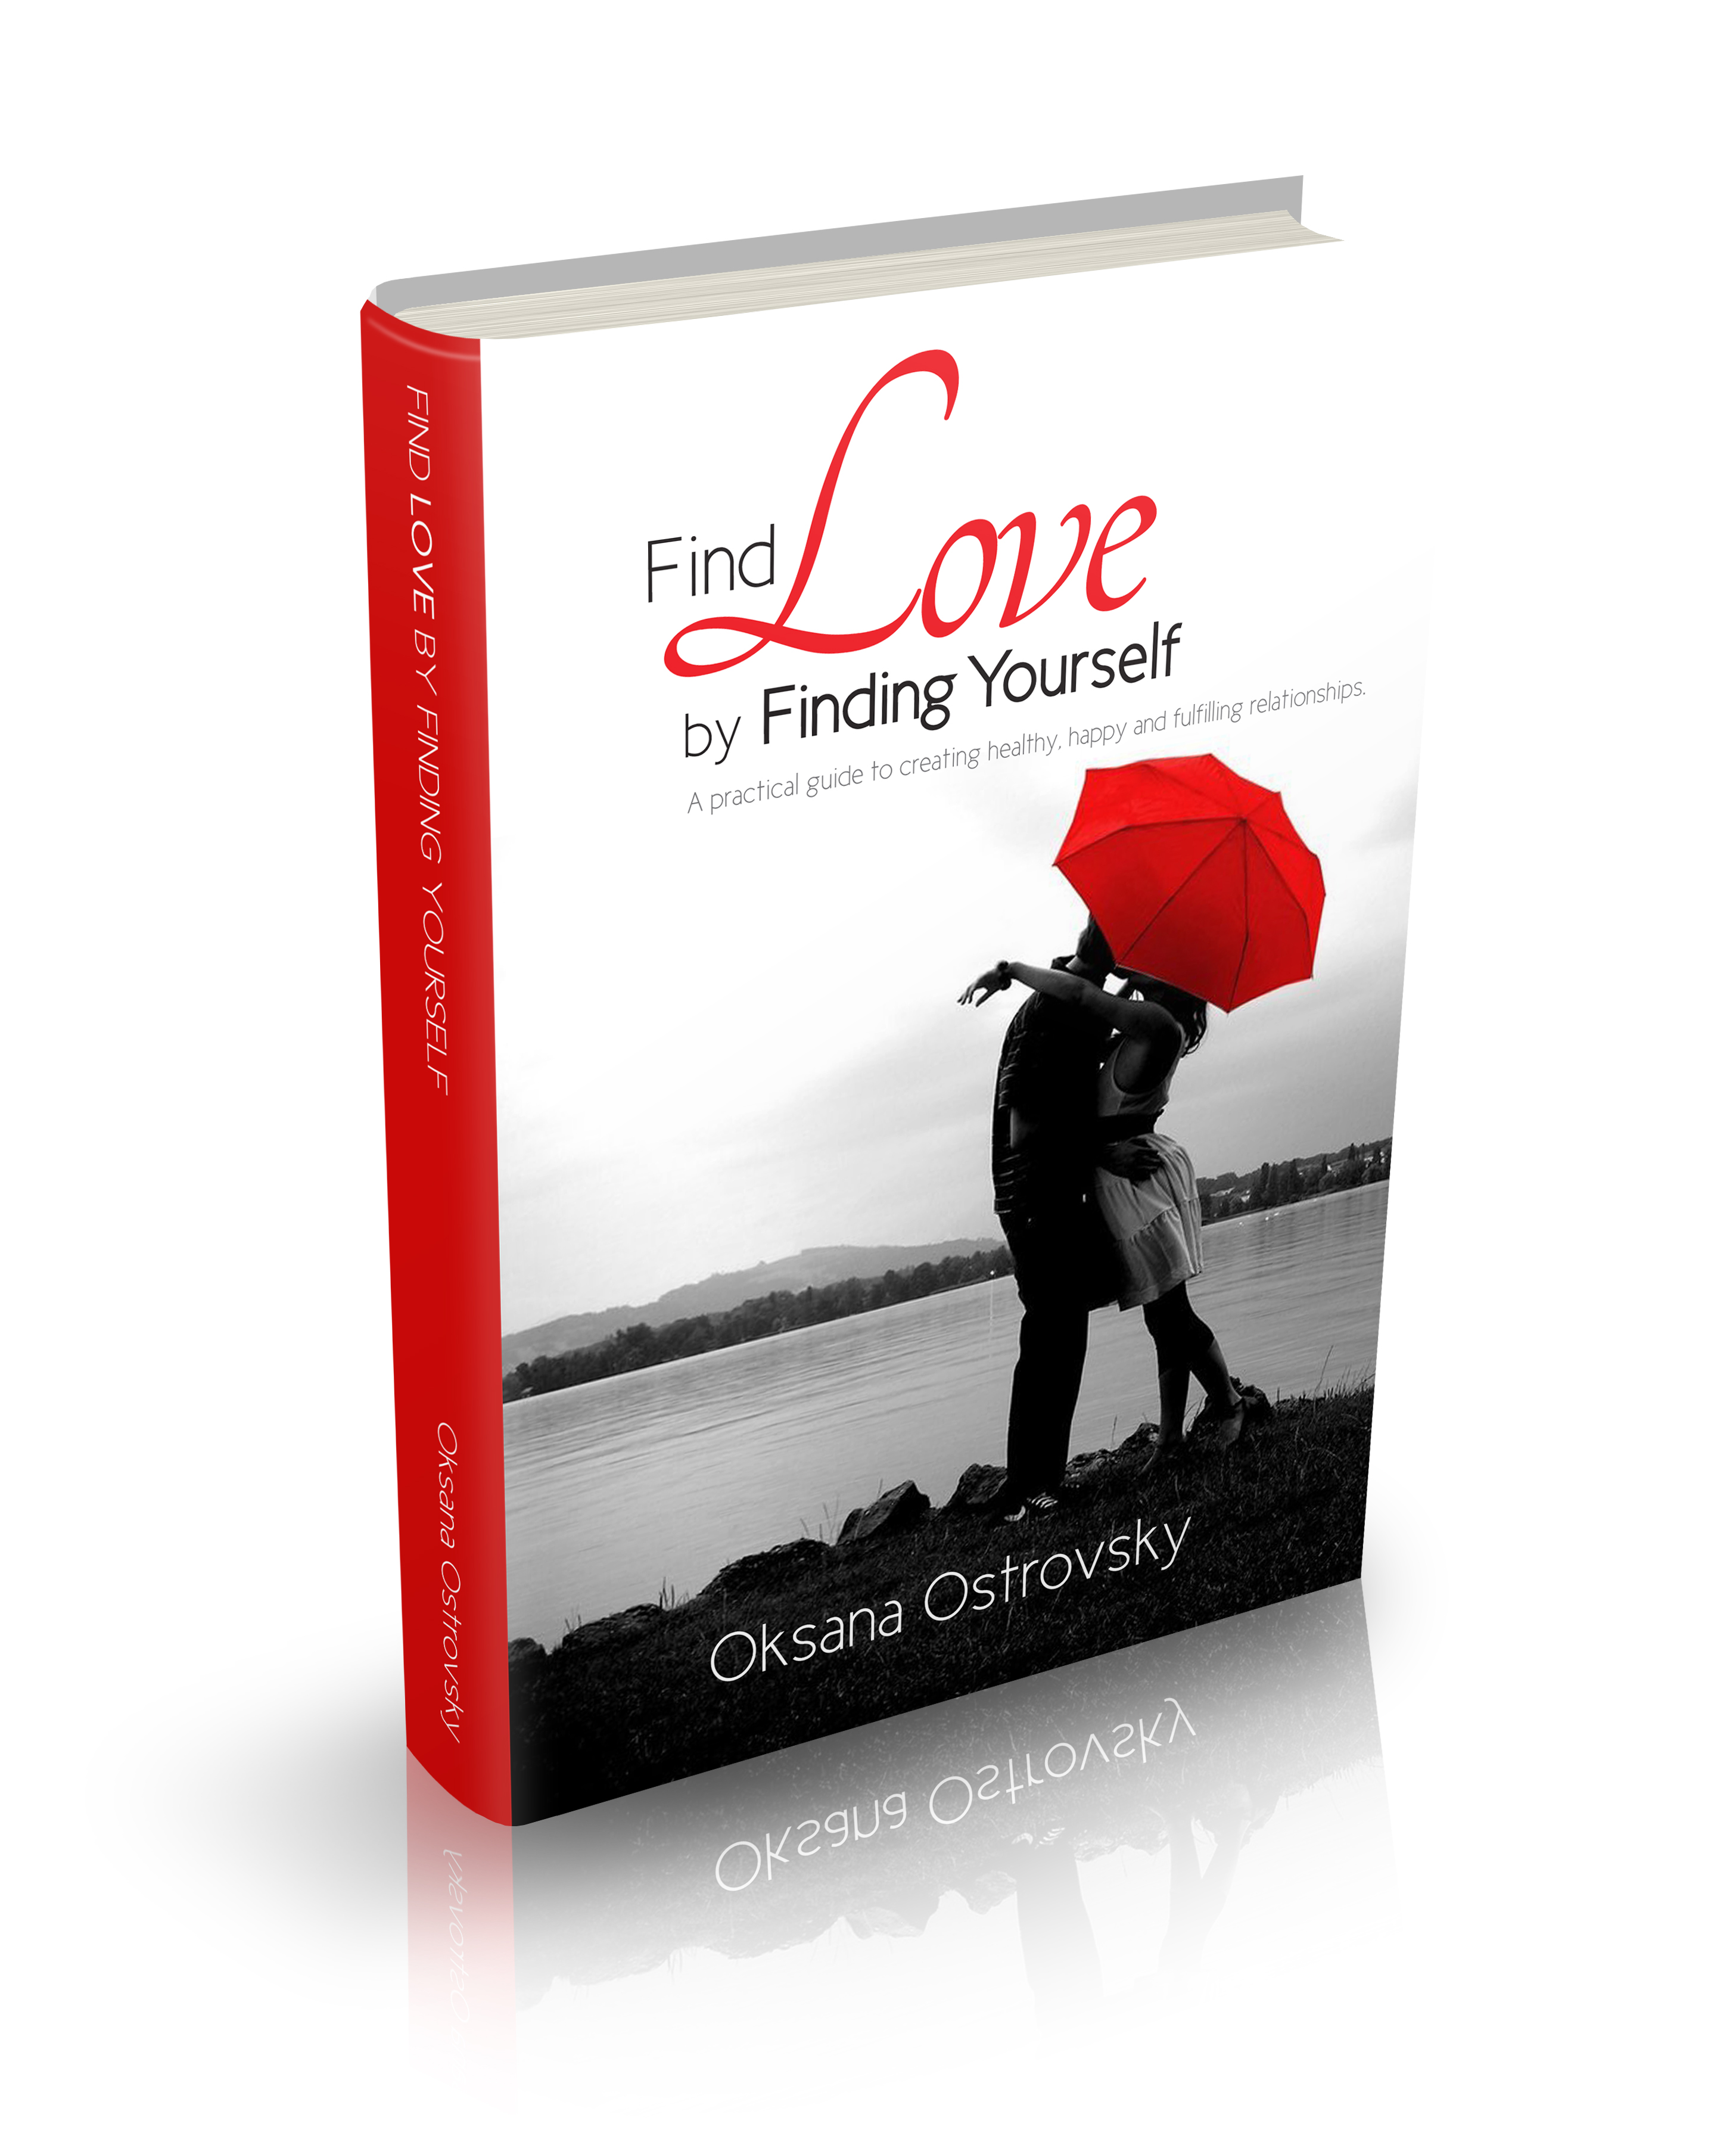 Find Love by Finding Yourself book cover